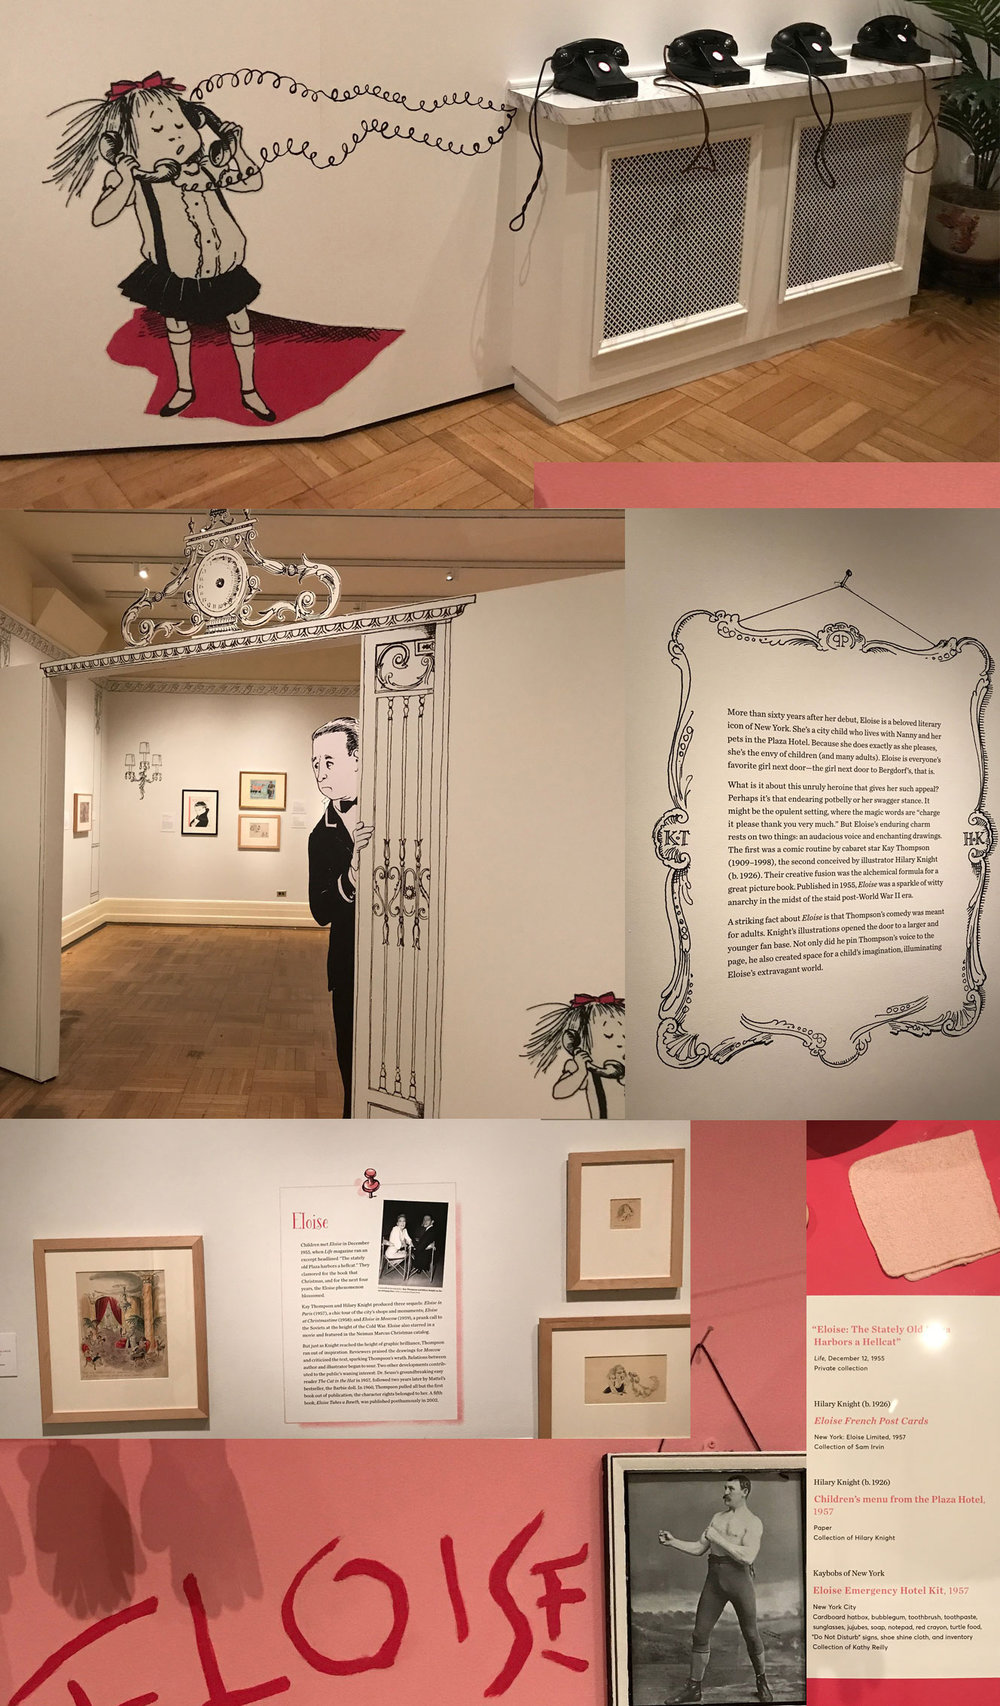 Eloise Exhibit At NY Historical Society